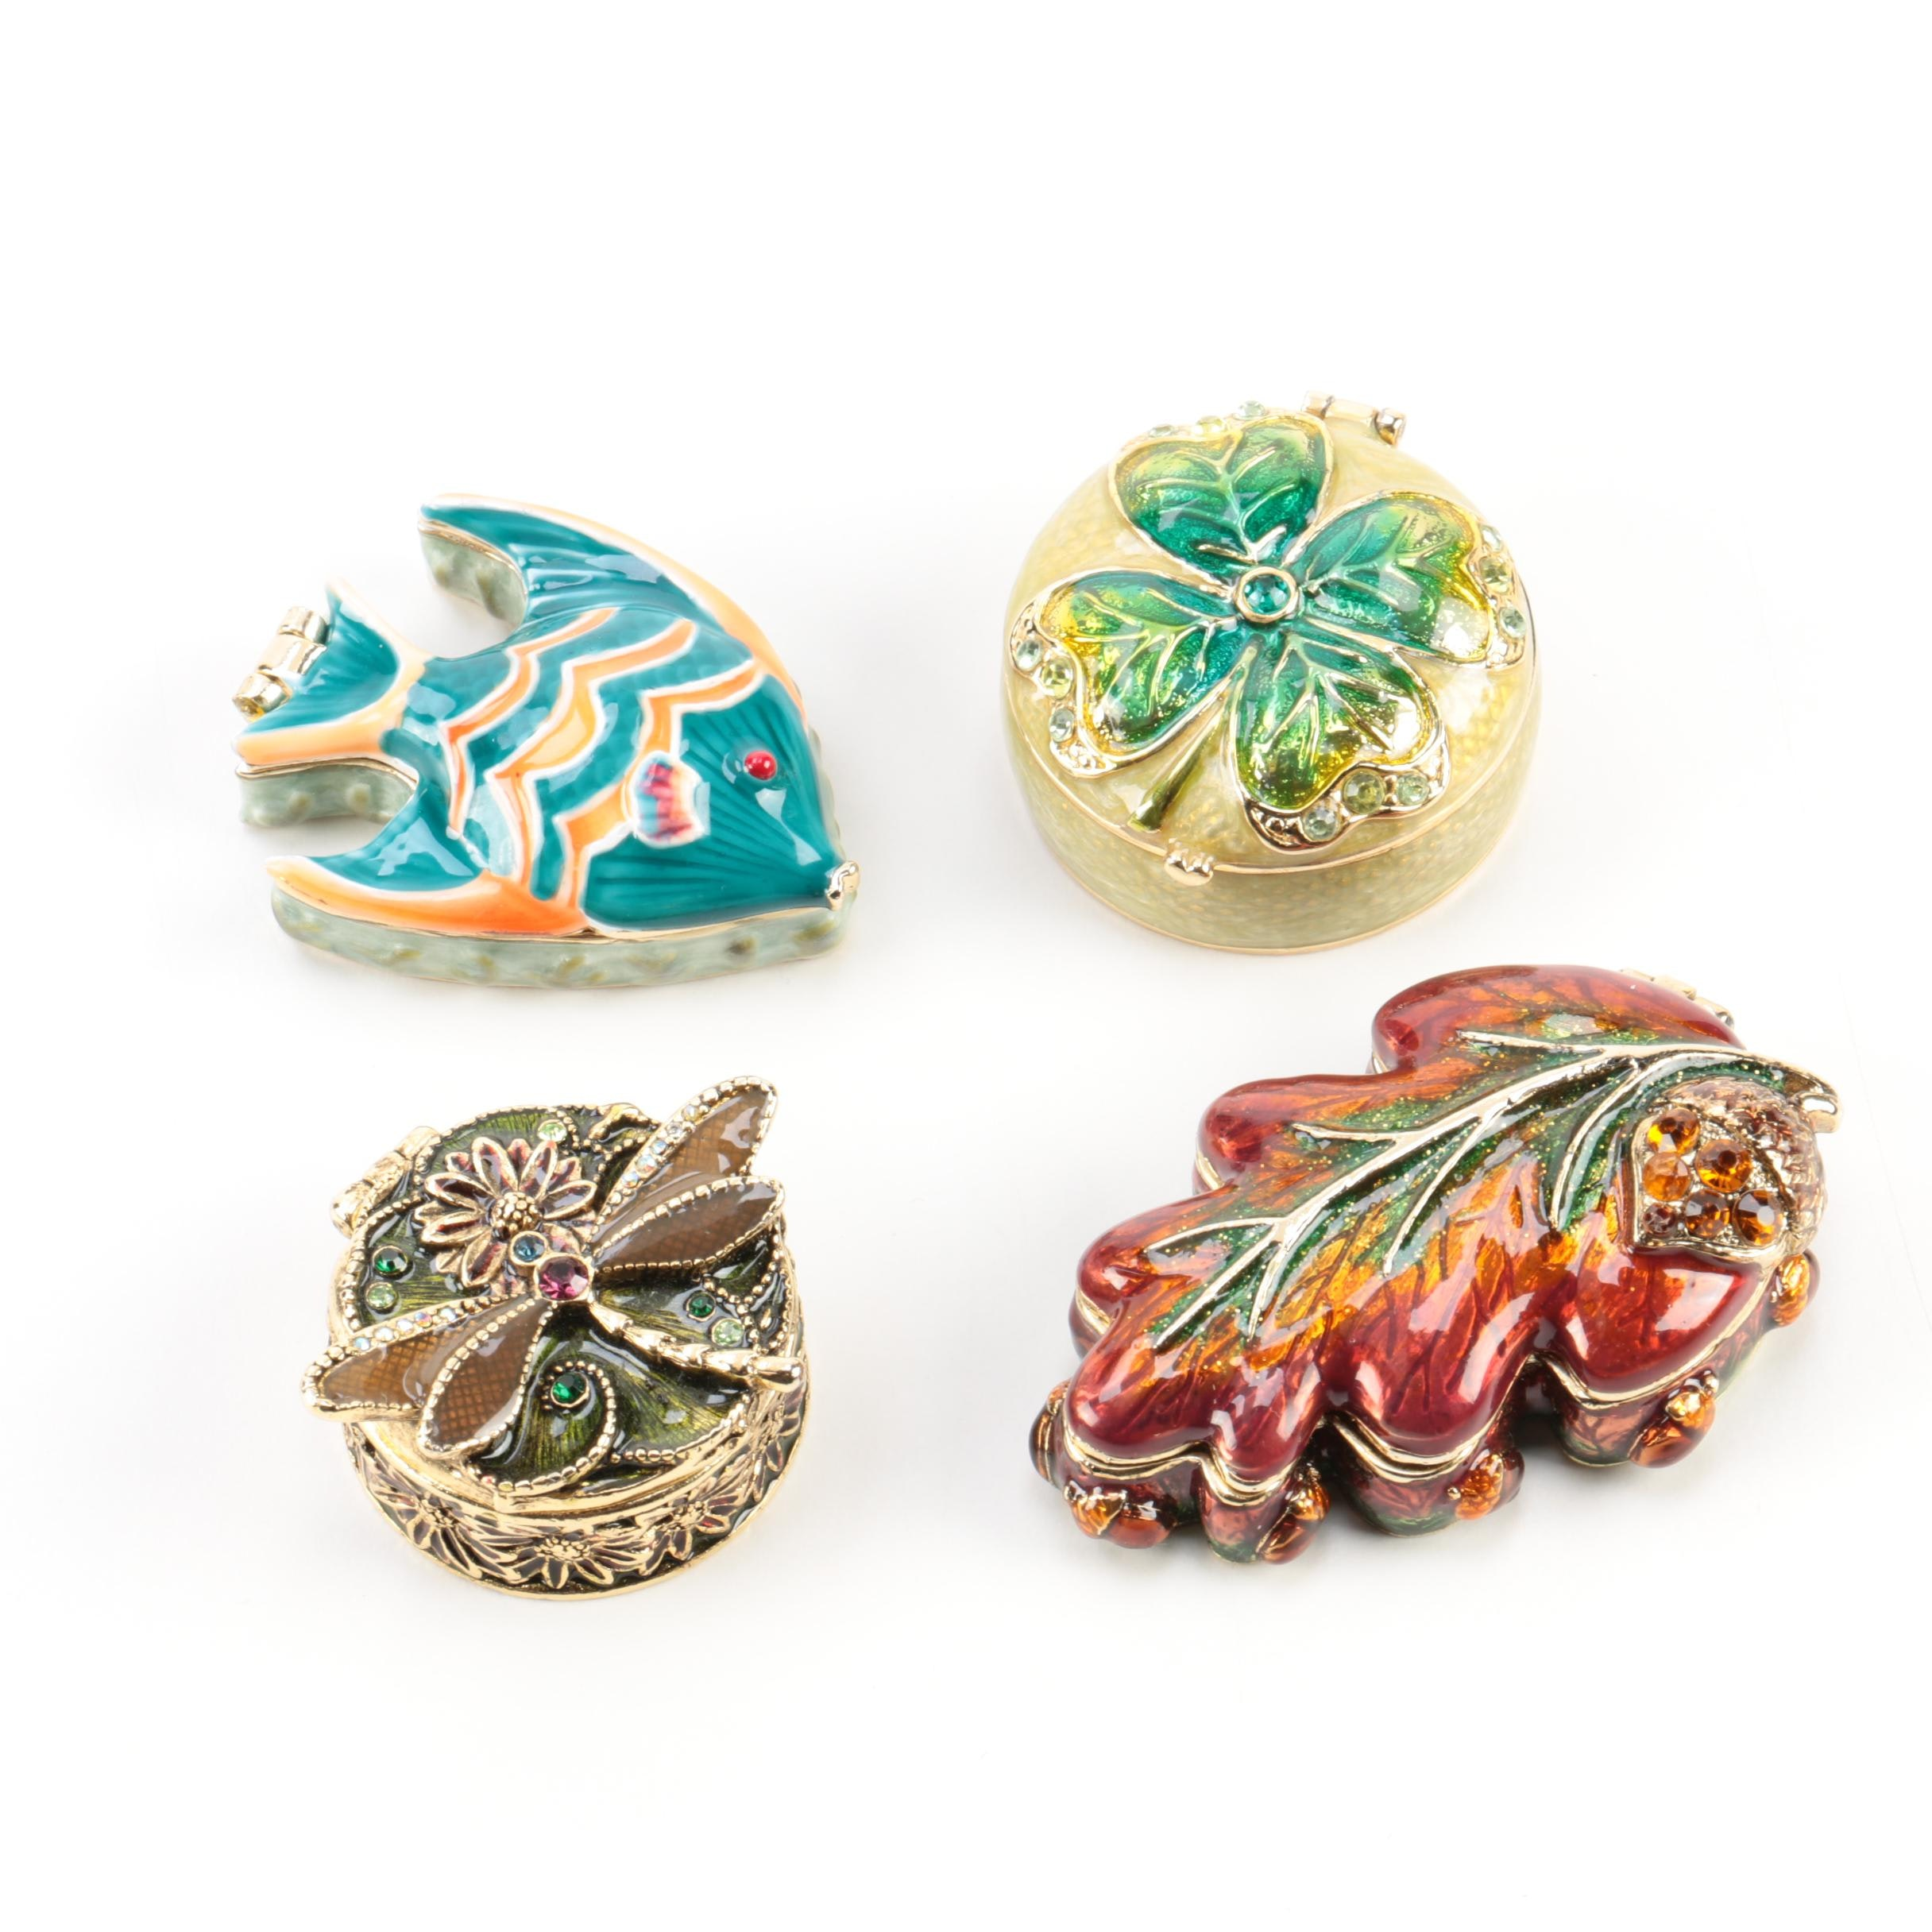 Enameled Trinket Boxes by Monet